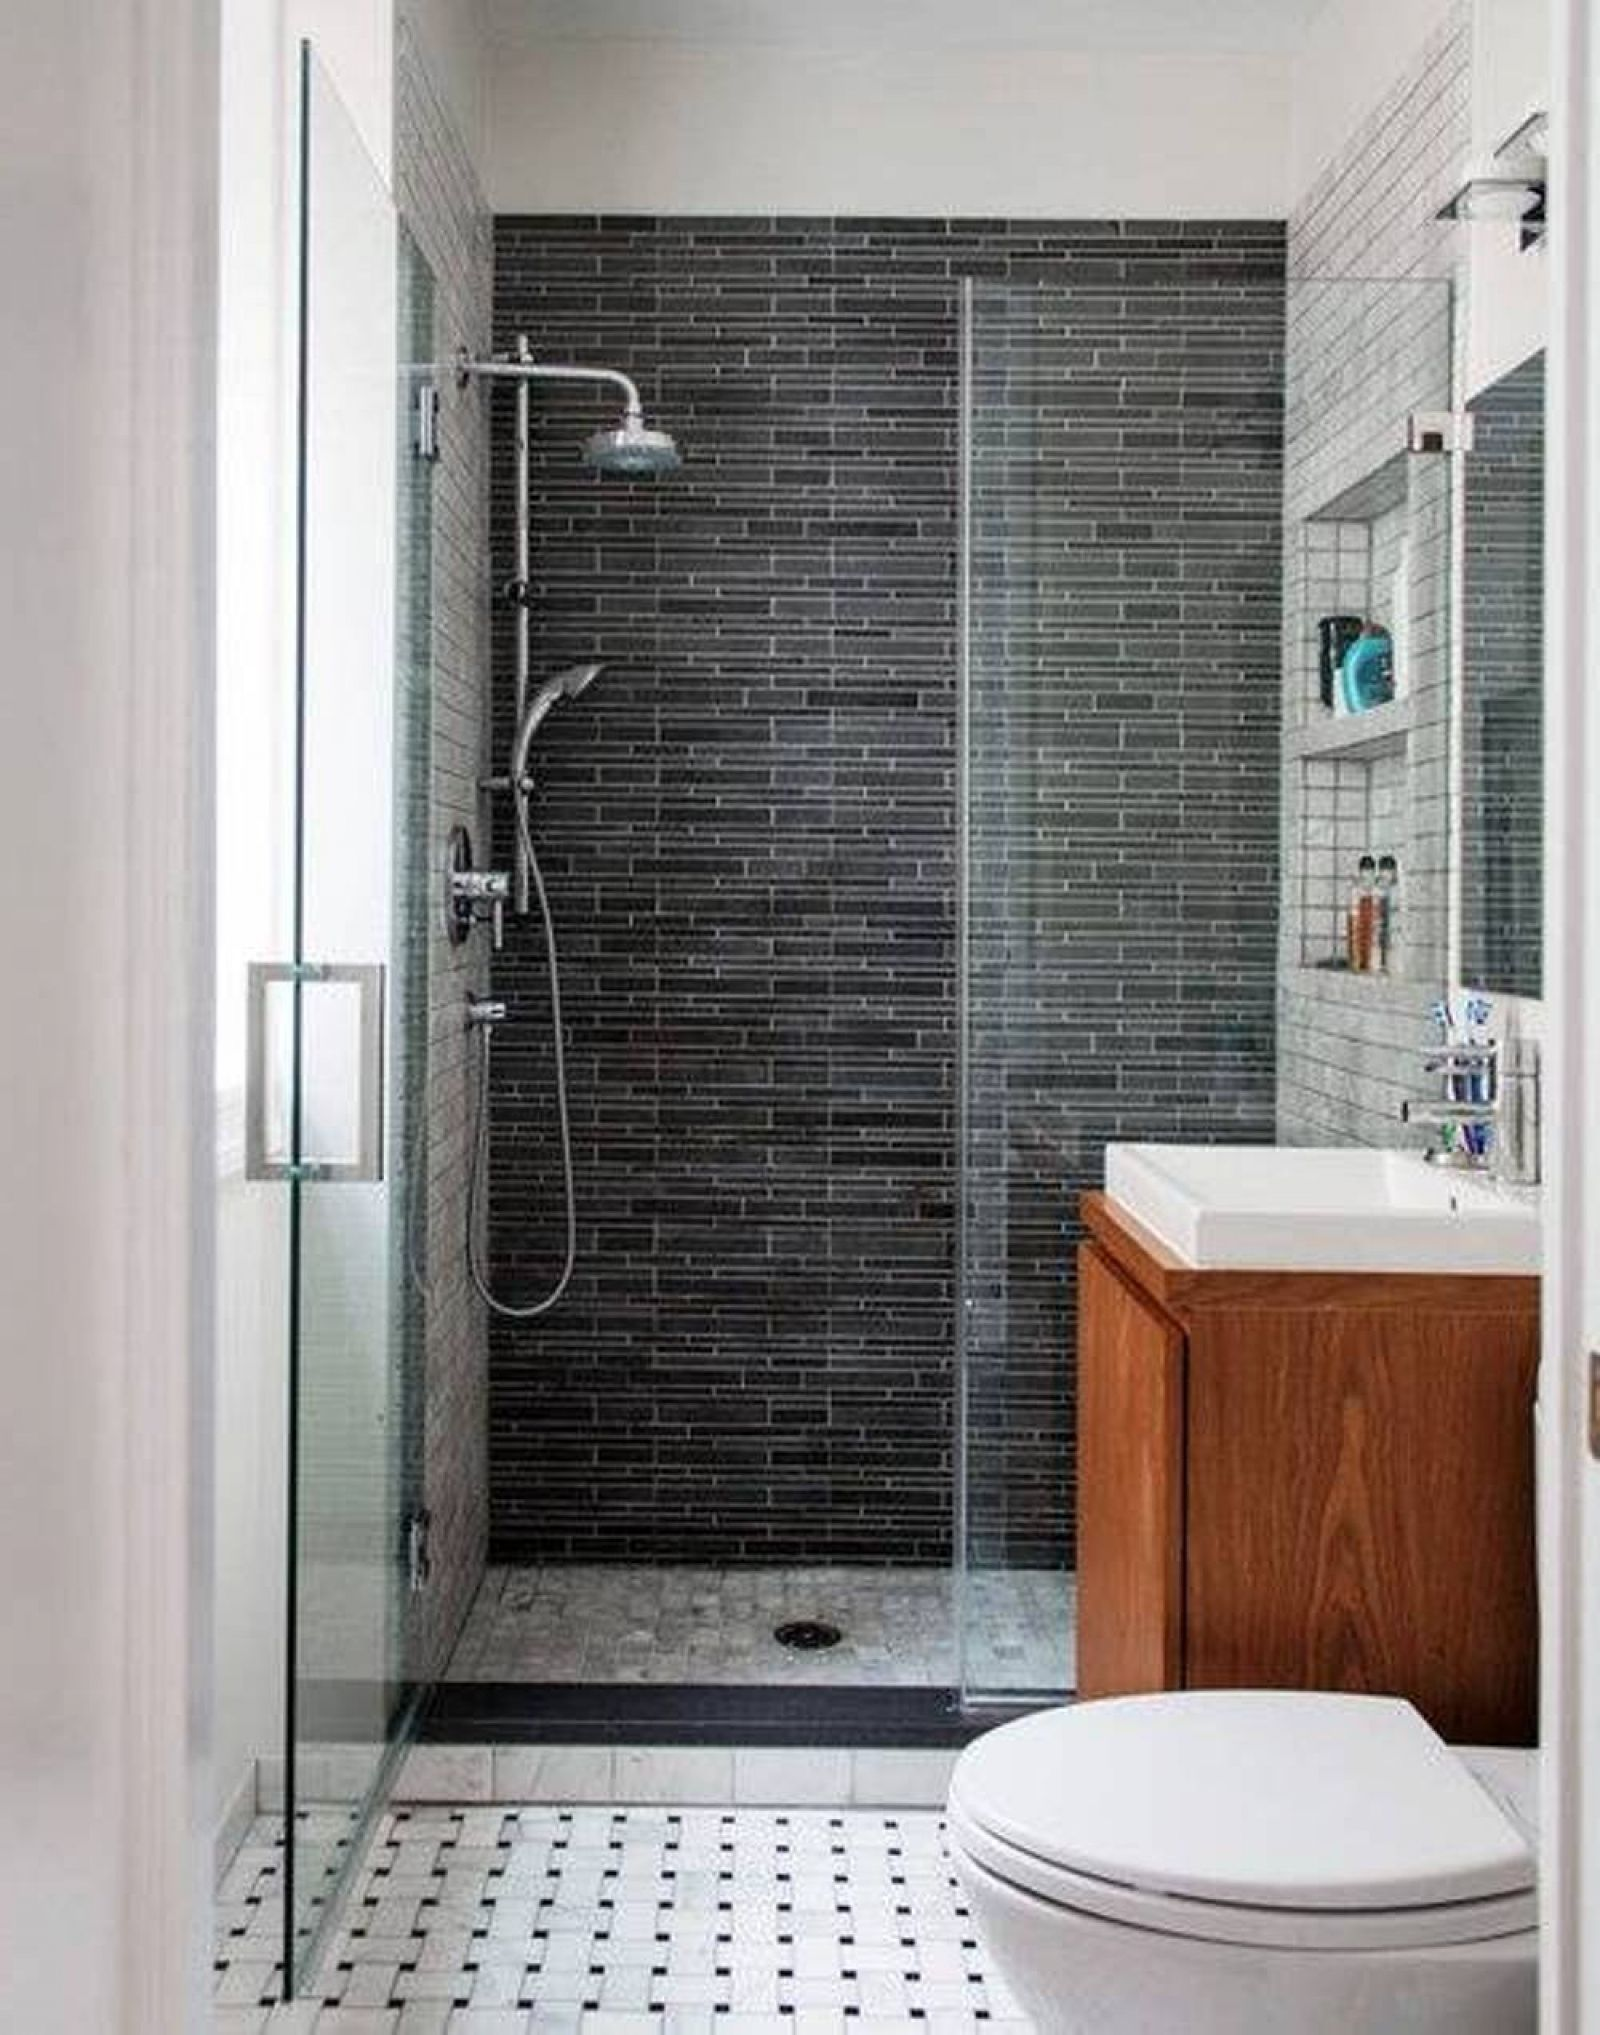 Small Bathroom Remodel Ideas On A Budget Cheap Bathroom Remodel Simple Bathroom Bathroom Layout